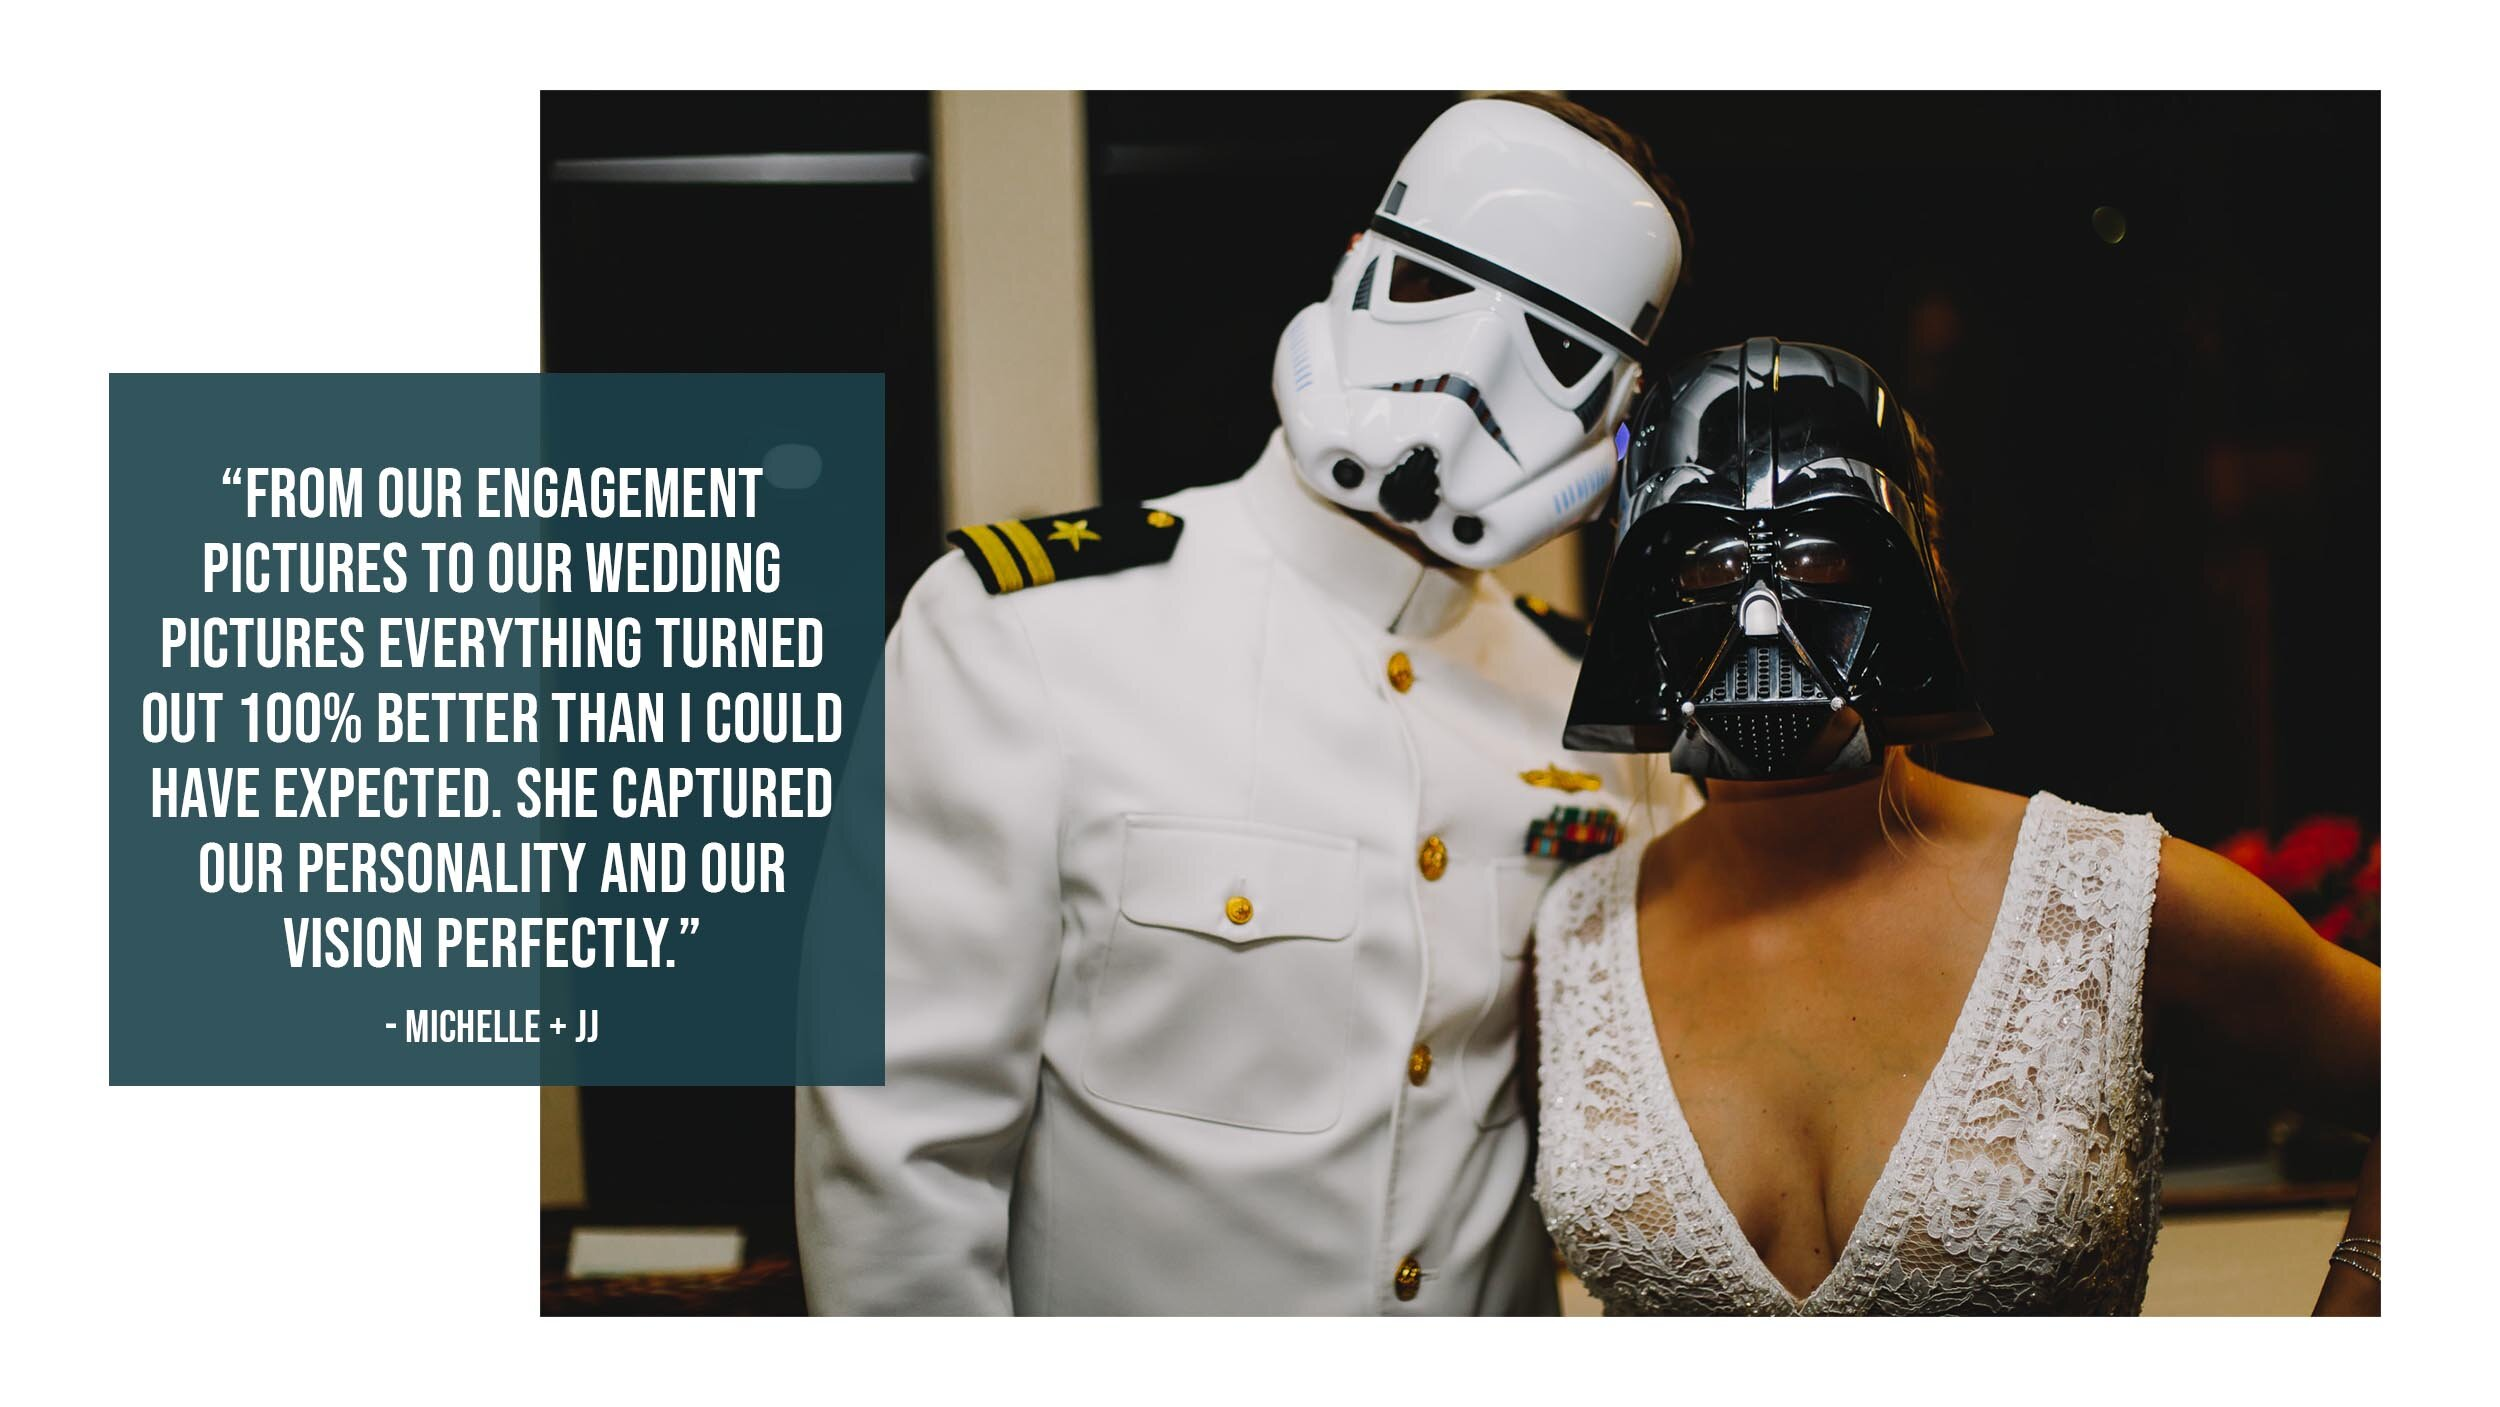 Archer Inspired Photography Long Beach Wedding Photographer SoCal OC Los Angeles Review 3.jpg